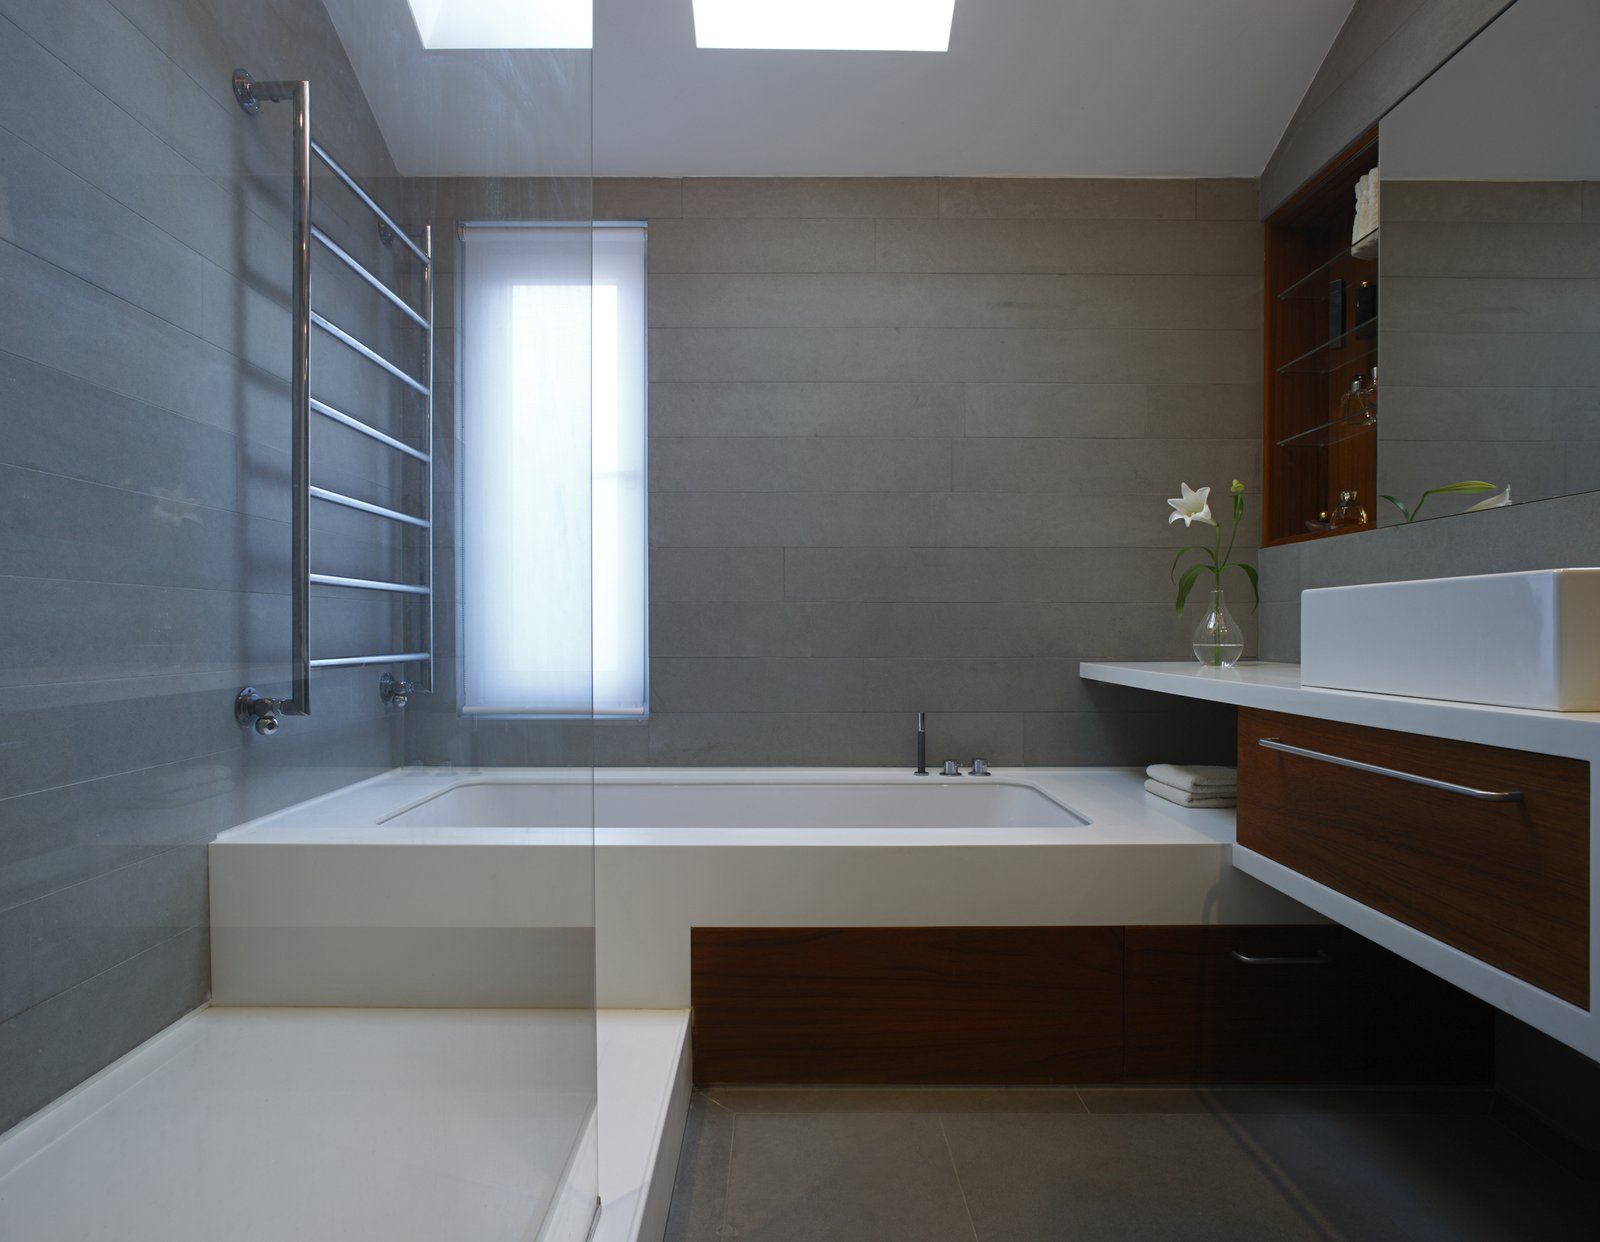 Bath Room, Quartzite Counter, Concrete Floor, Soaking Tub, Undermount Tub, and Enclosed Shower  Elm Grove by Thompson + Baroni